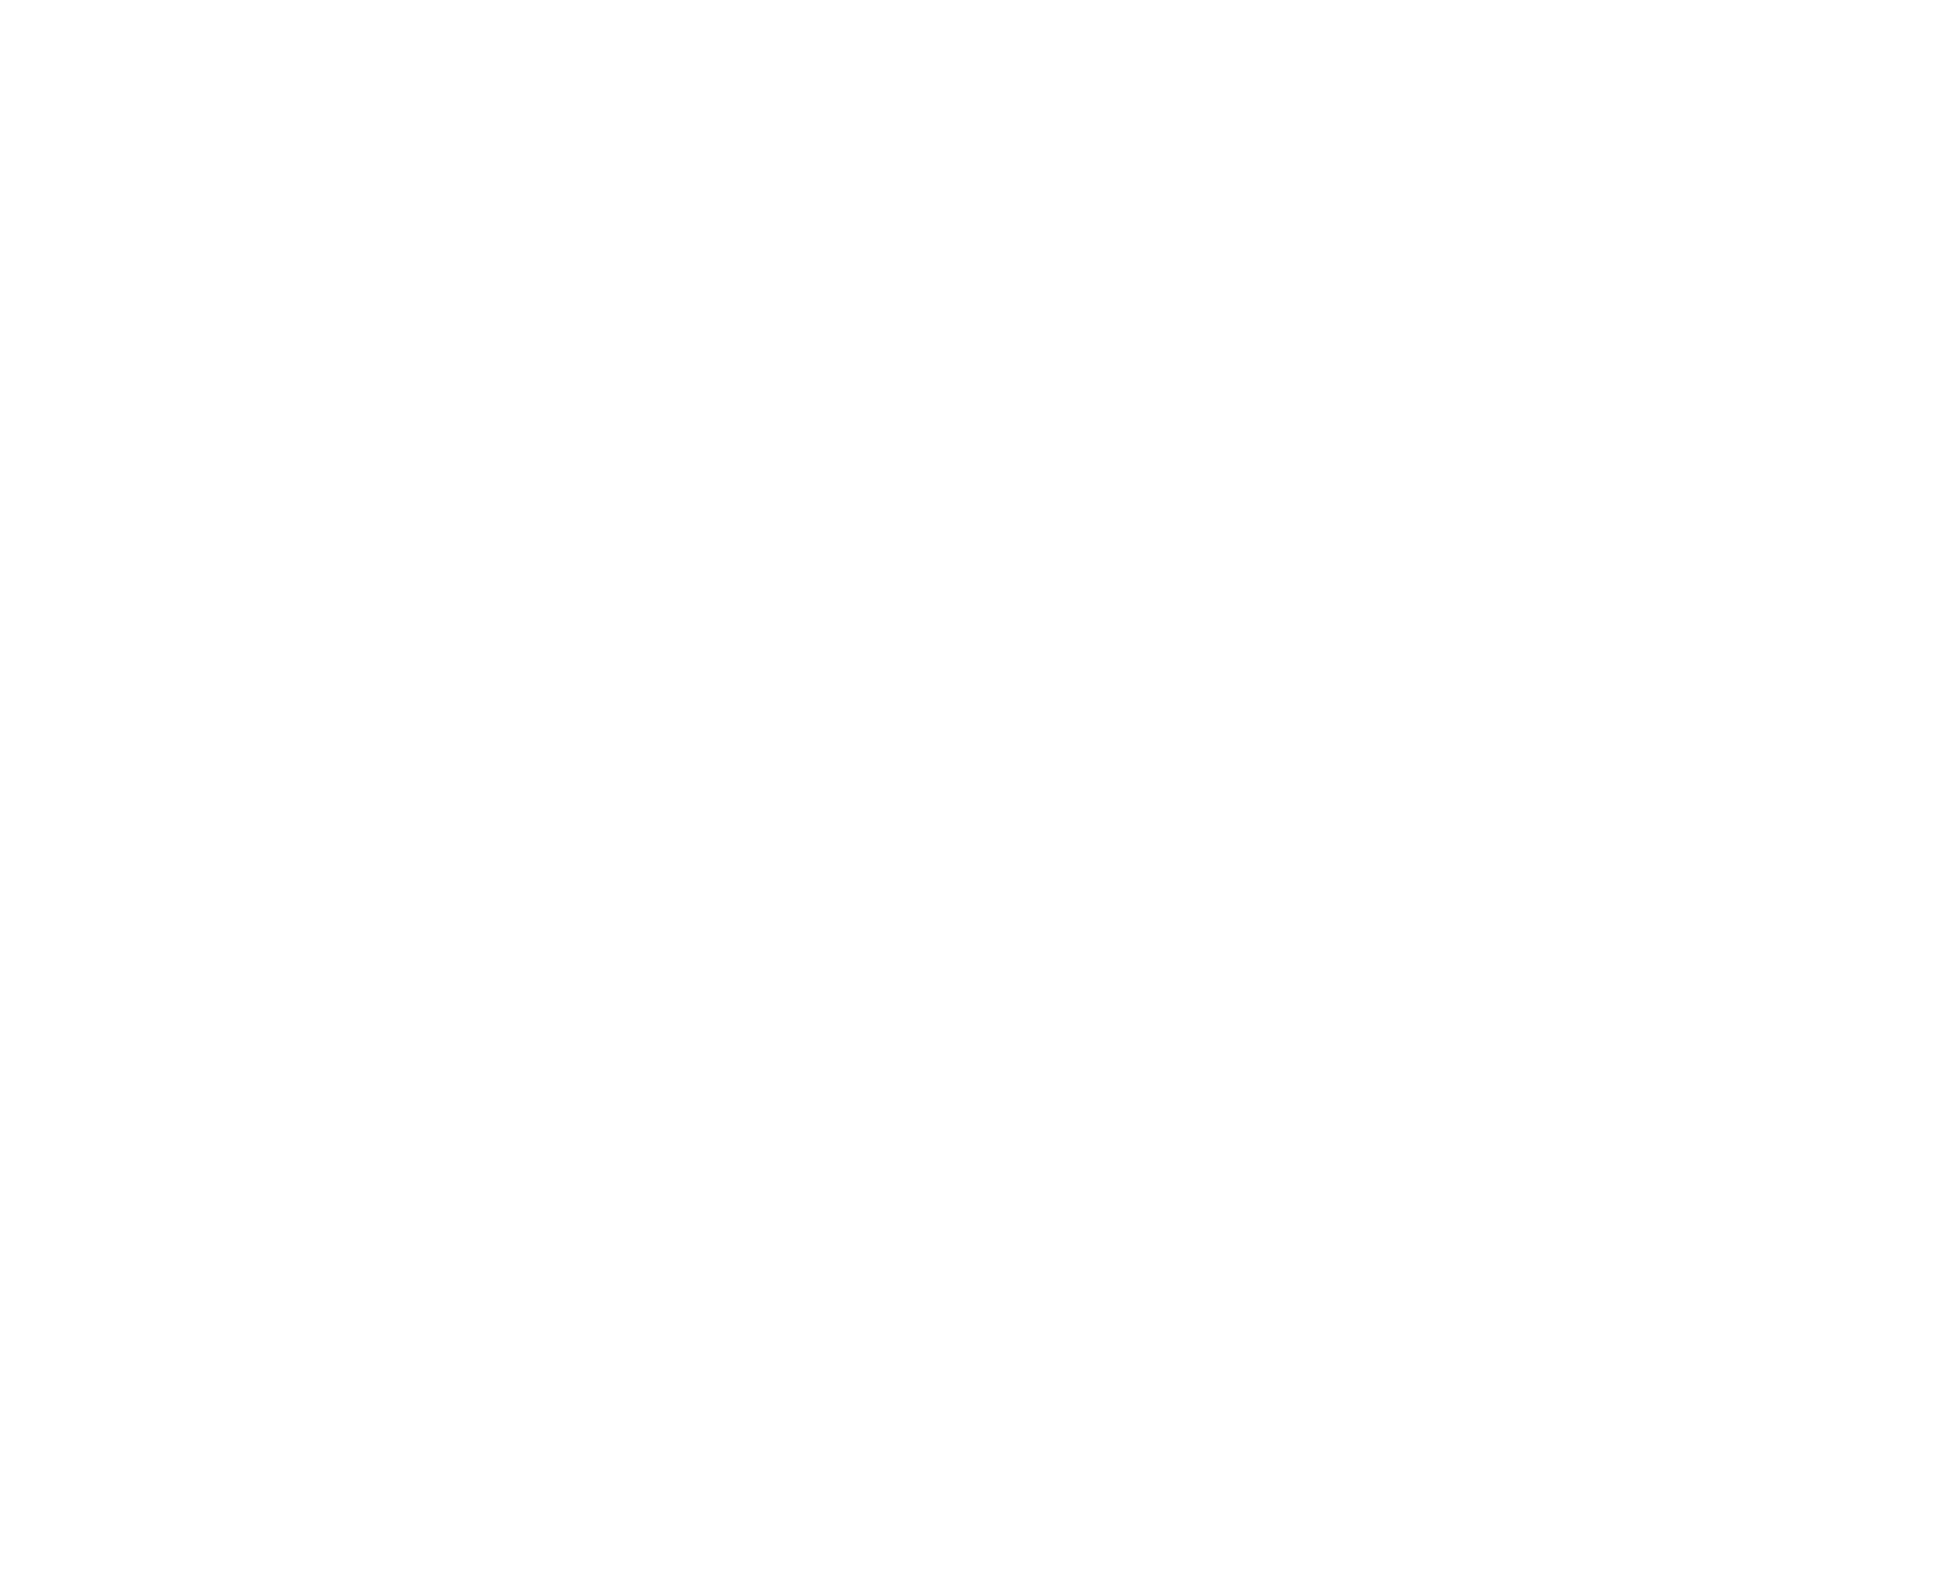 Provided over 4,100 affordable homes for families in need.